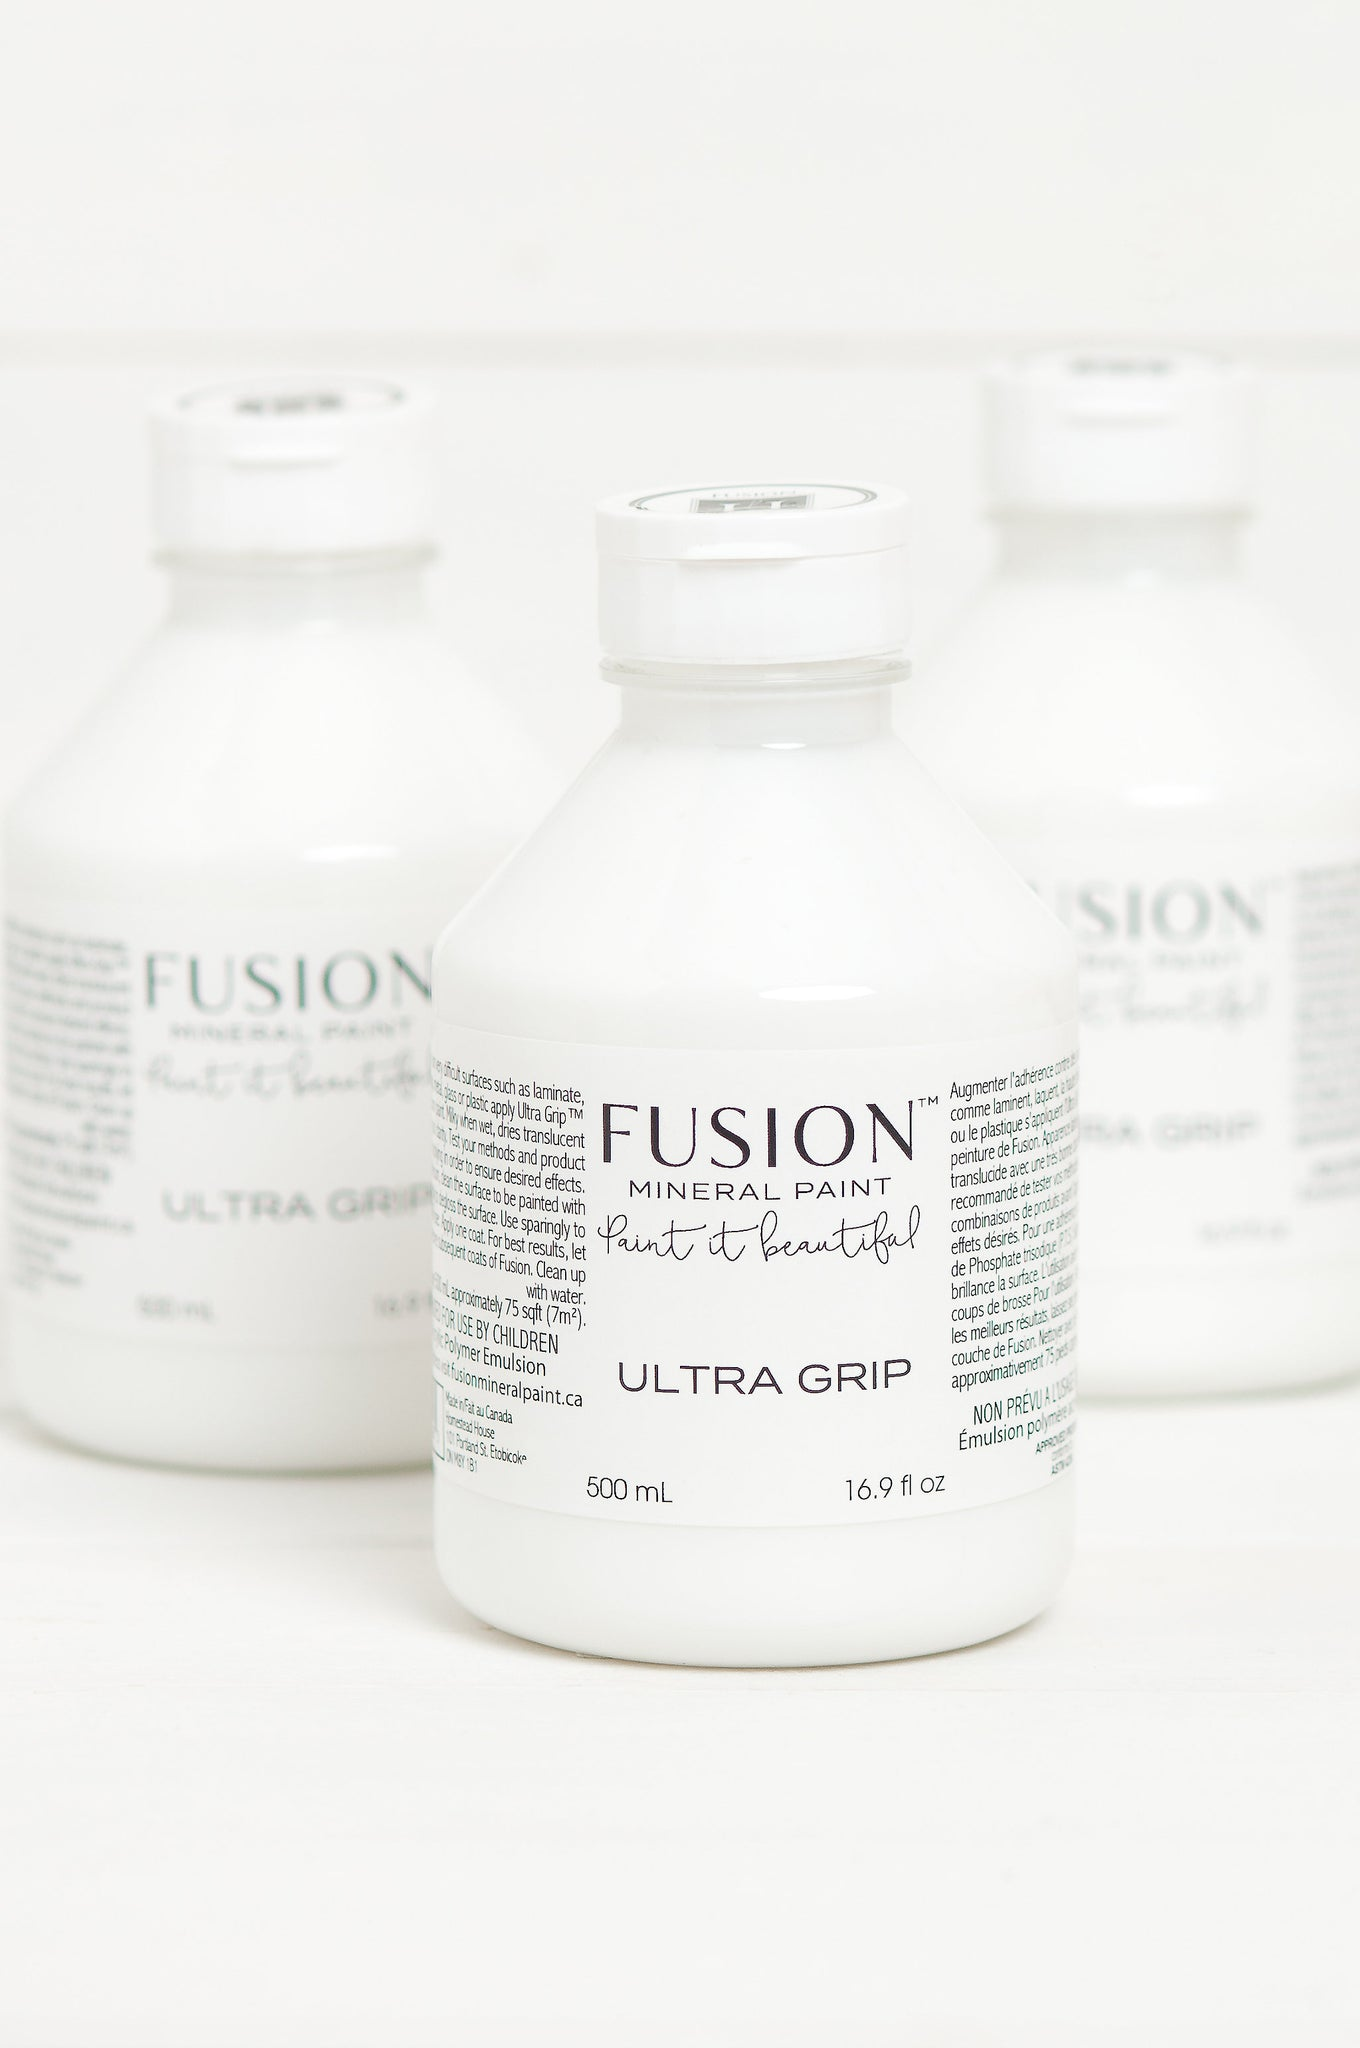 Ultra Grip™ - Home Revival - Fusion Mineral Paint UK